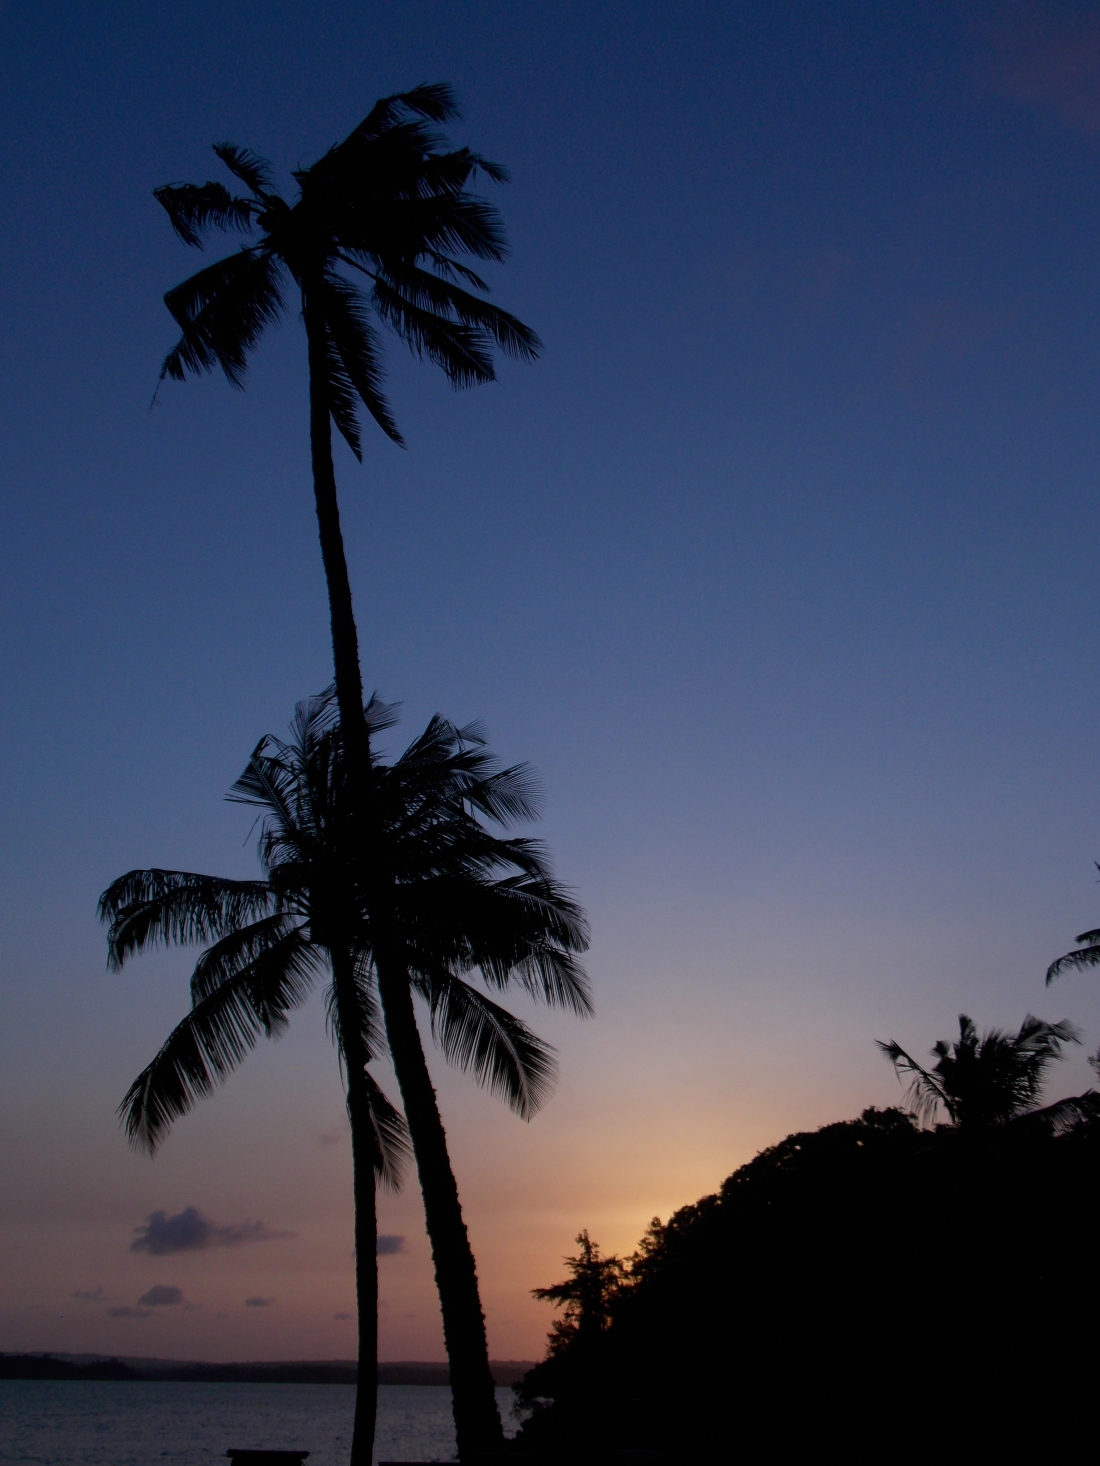 Sunset silhouette of palm trees